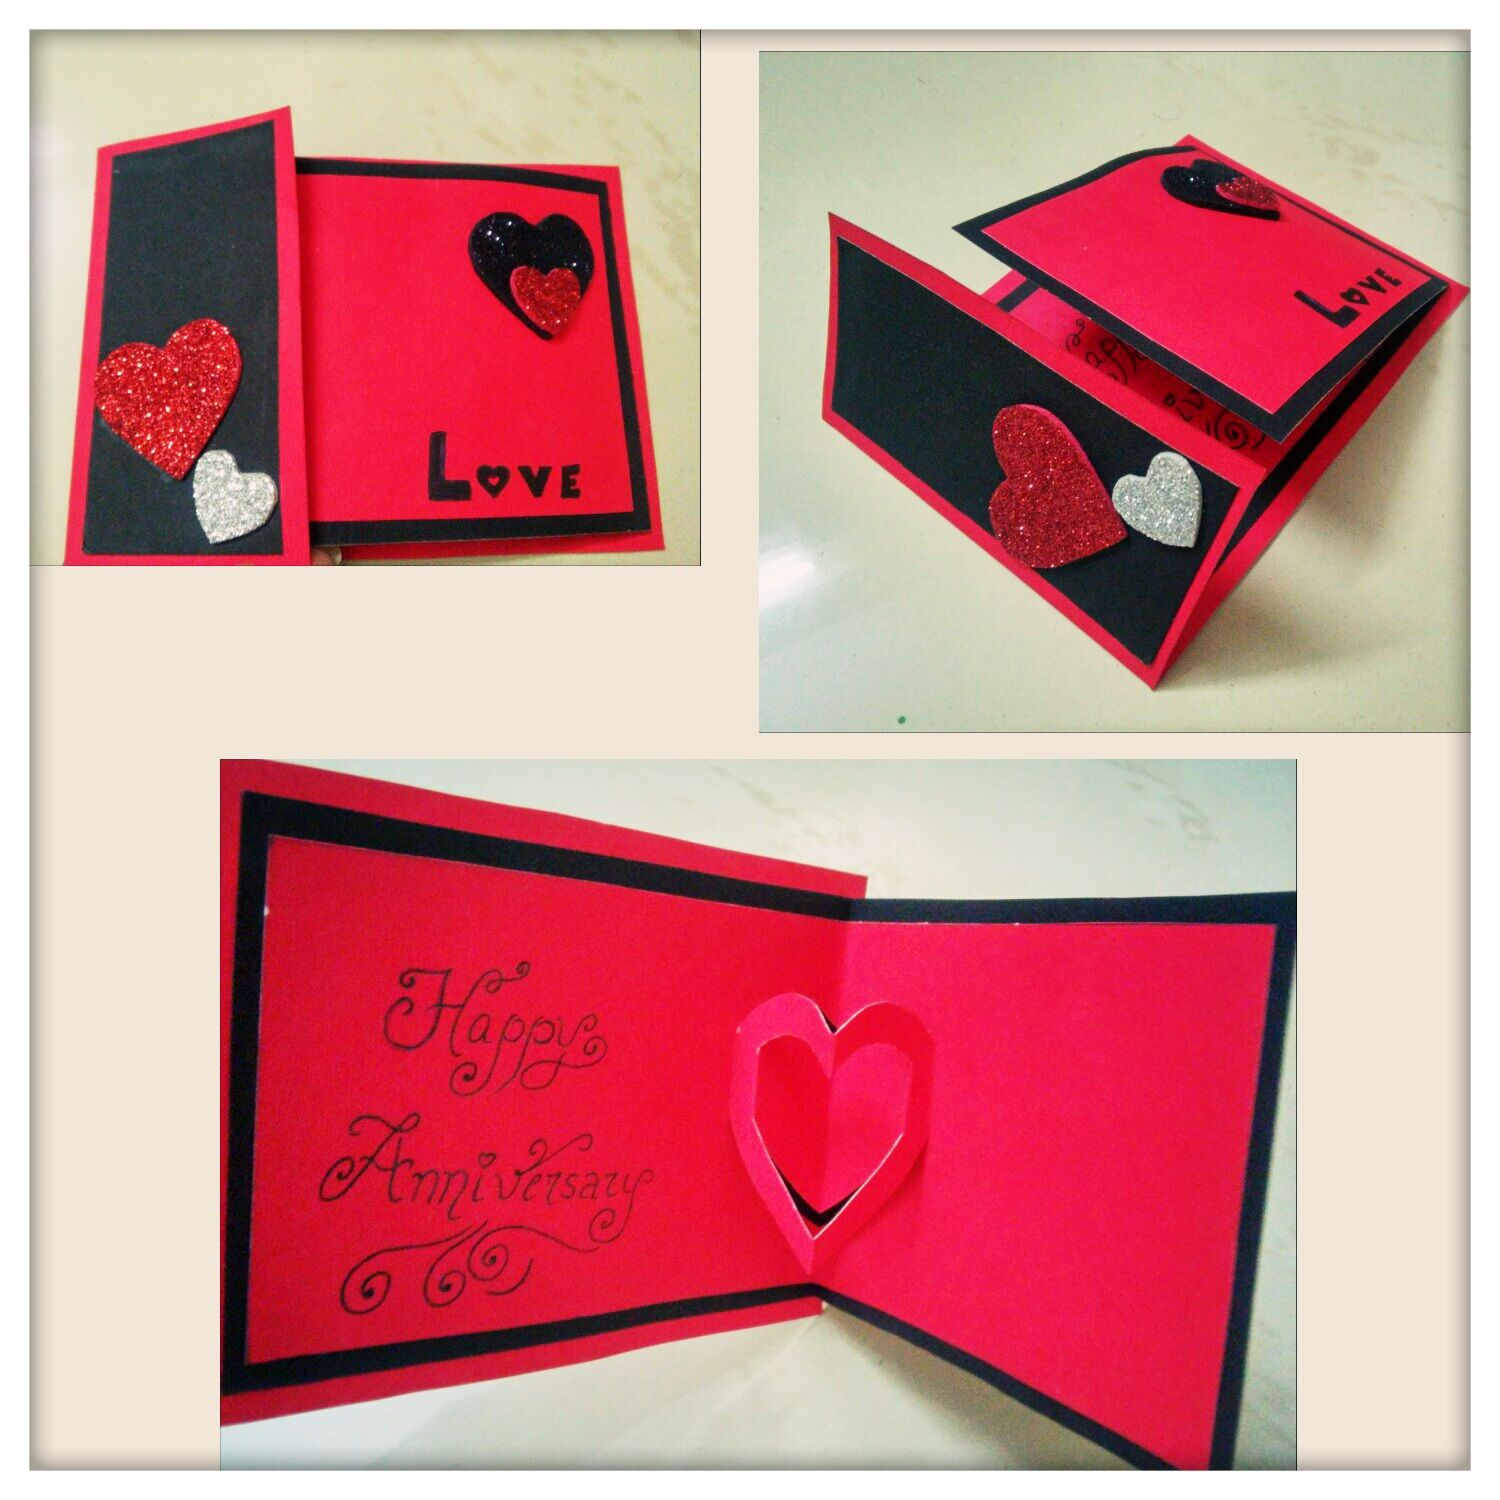 Howto Make #Handmade #Popup #Heart #Greeting #Card #DIY #Cards